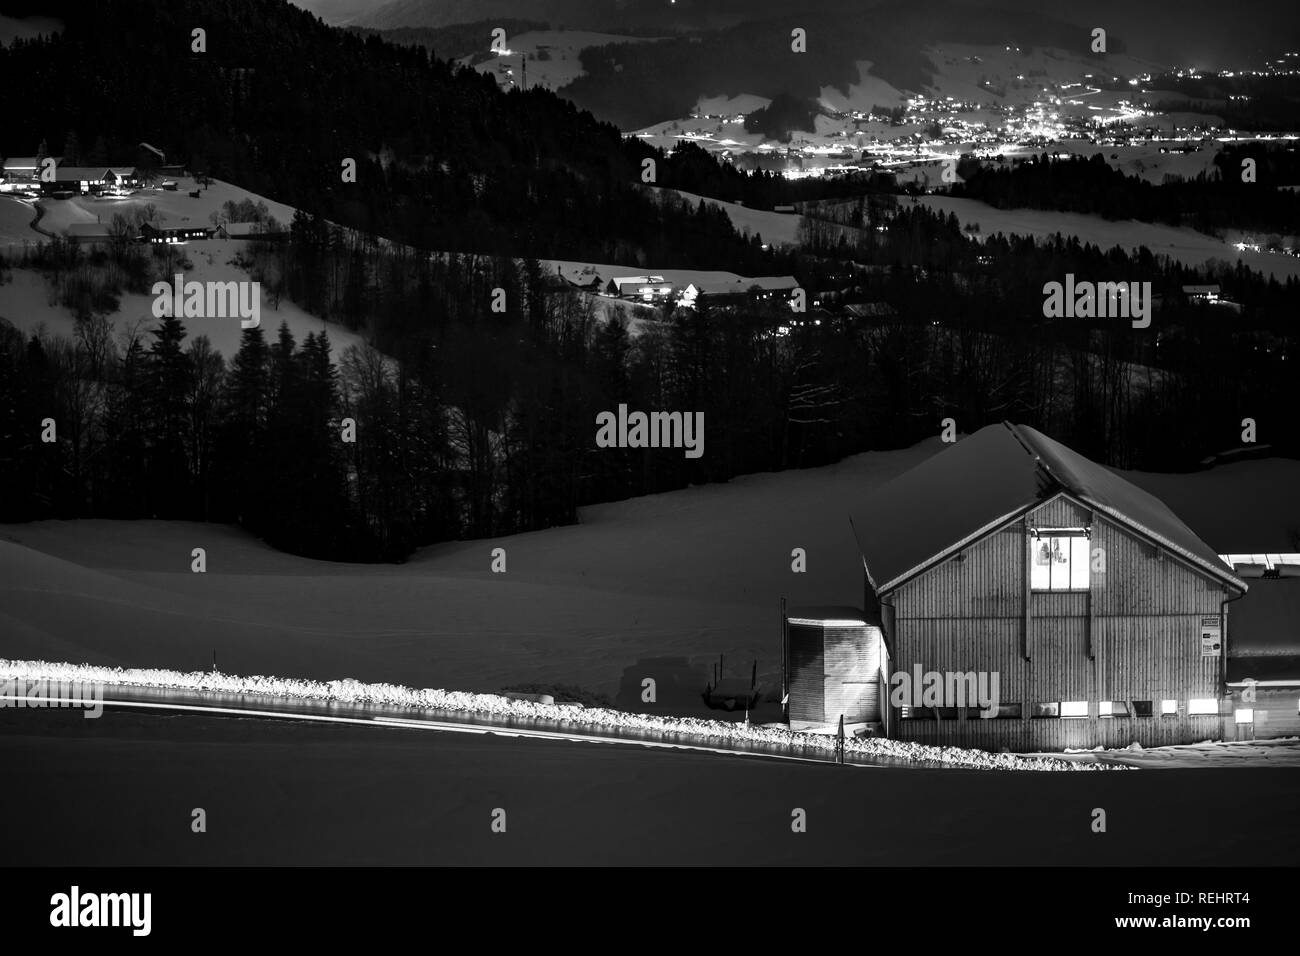 Long exposed night photography of cars driving through a snowy mountain road in the alps of Austria. Stock Photo